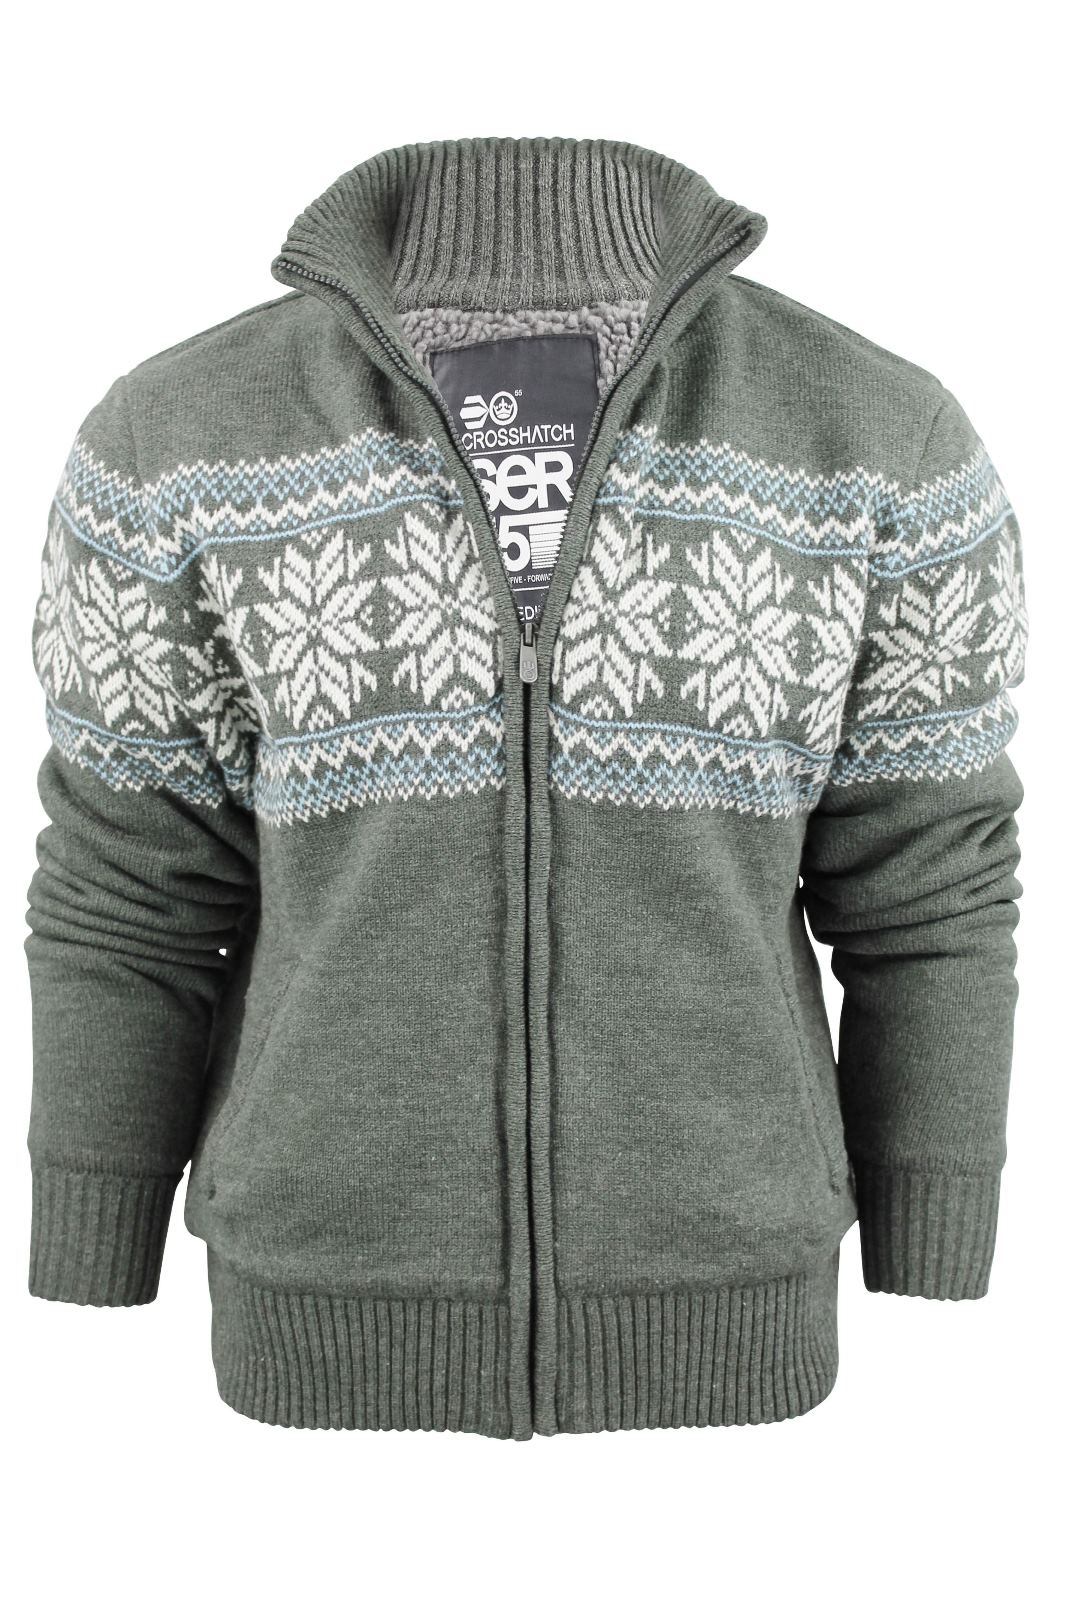 Mens Crosshatch Fair Isle Zip Cardigan Sherpa Fleece Linned ...